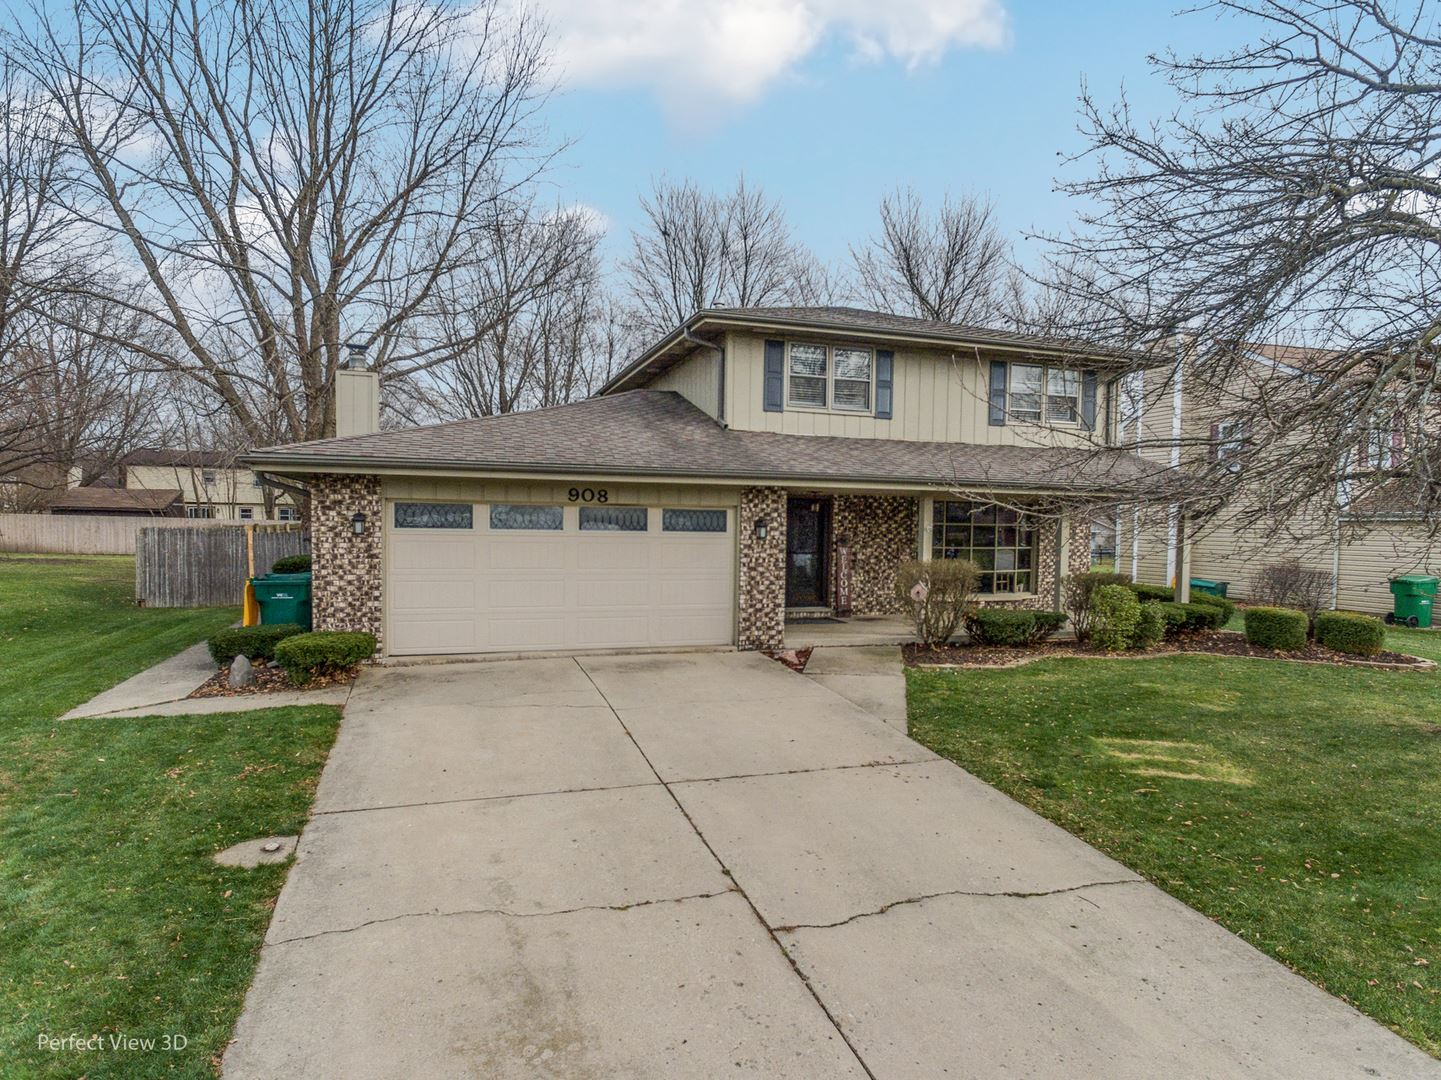 Photo of 908 Caprice Drive, Shorewood, IL 60404 (MLS # 10939357)